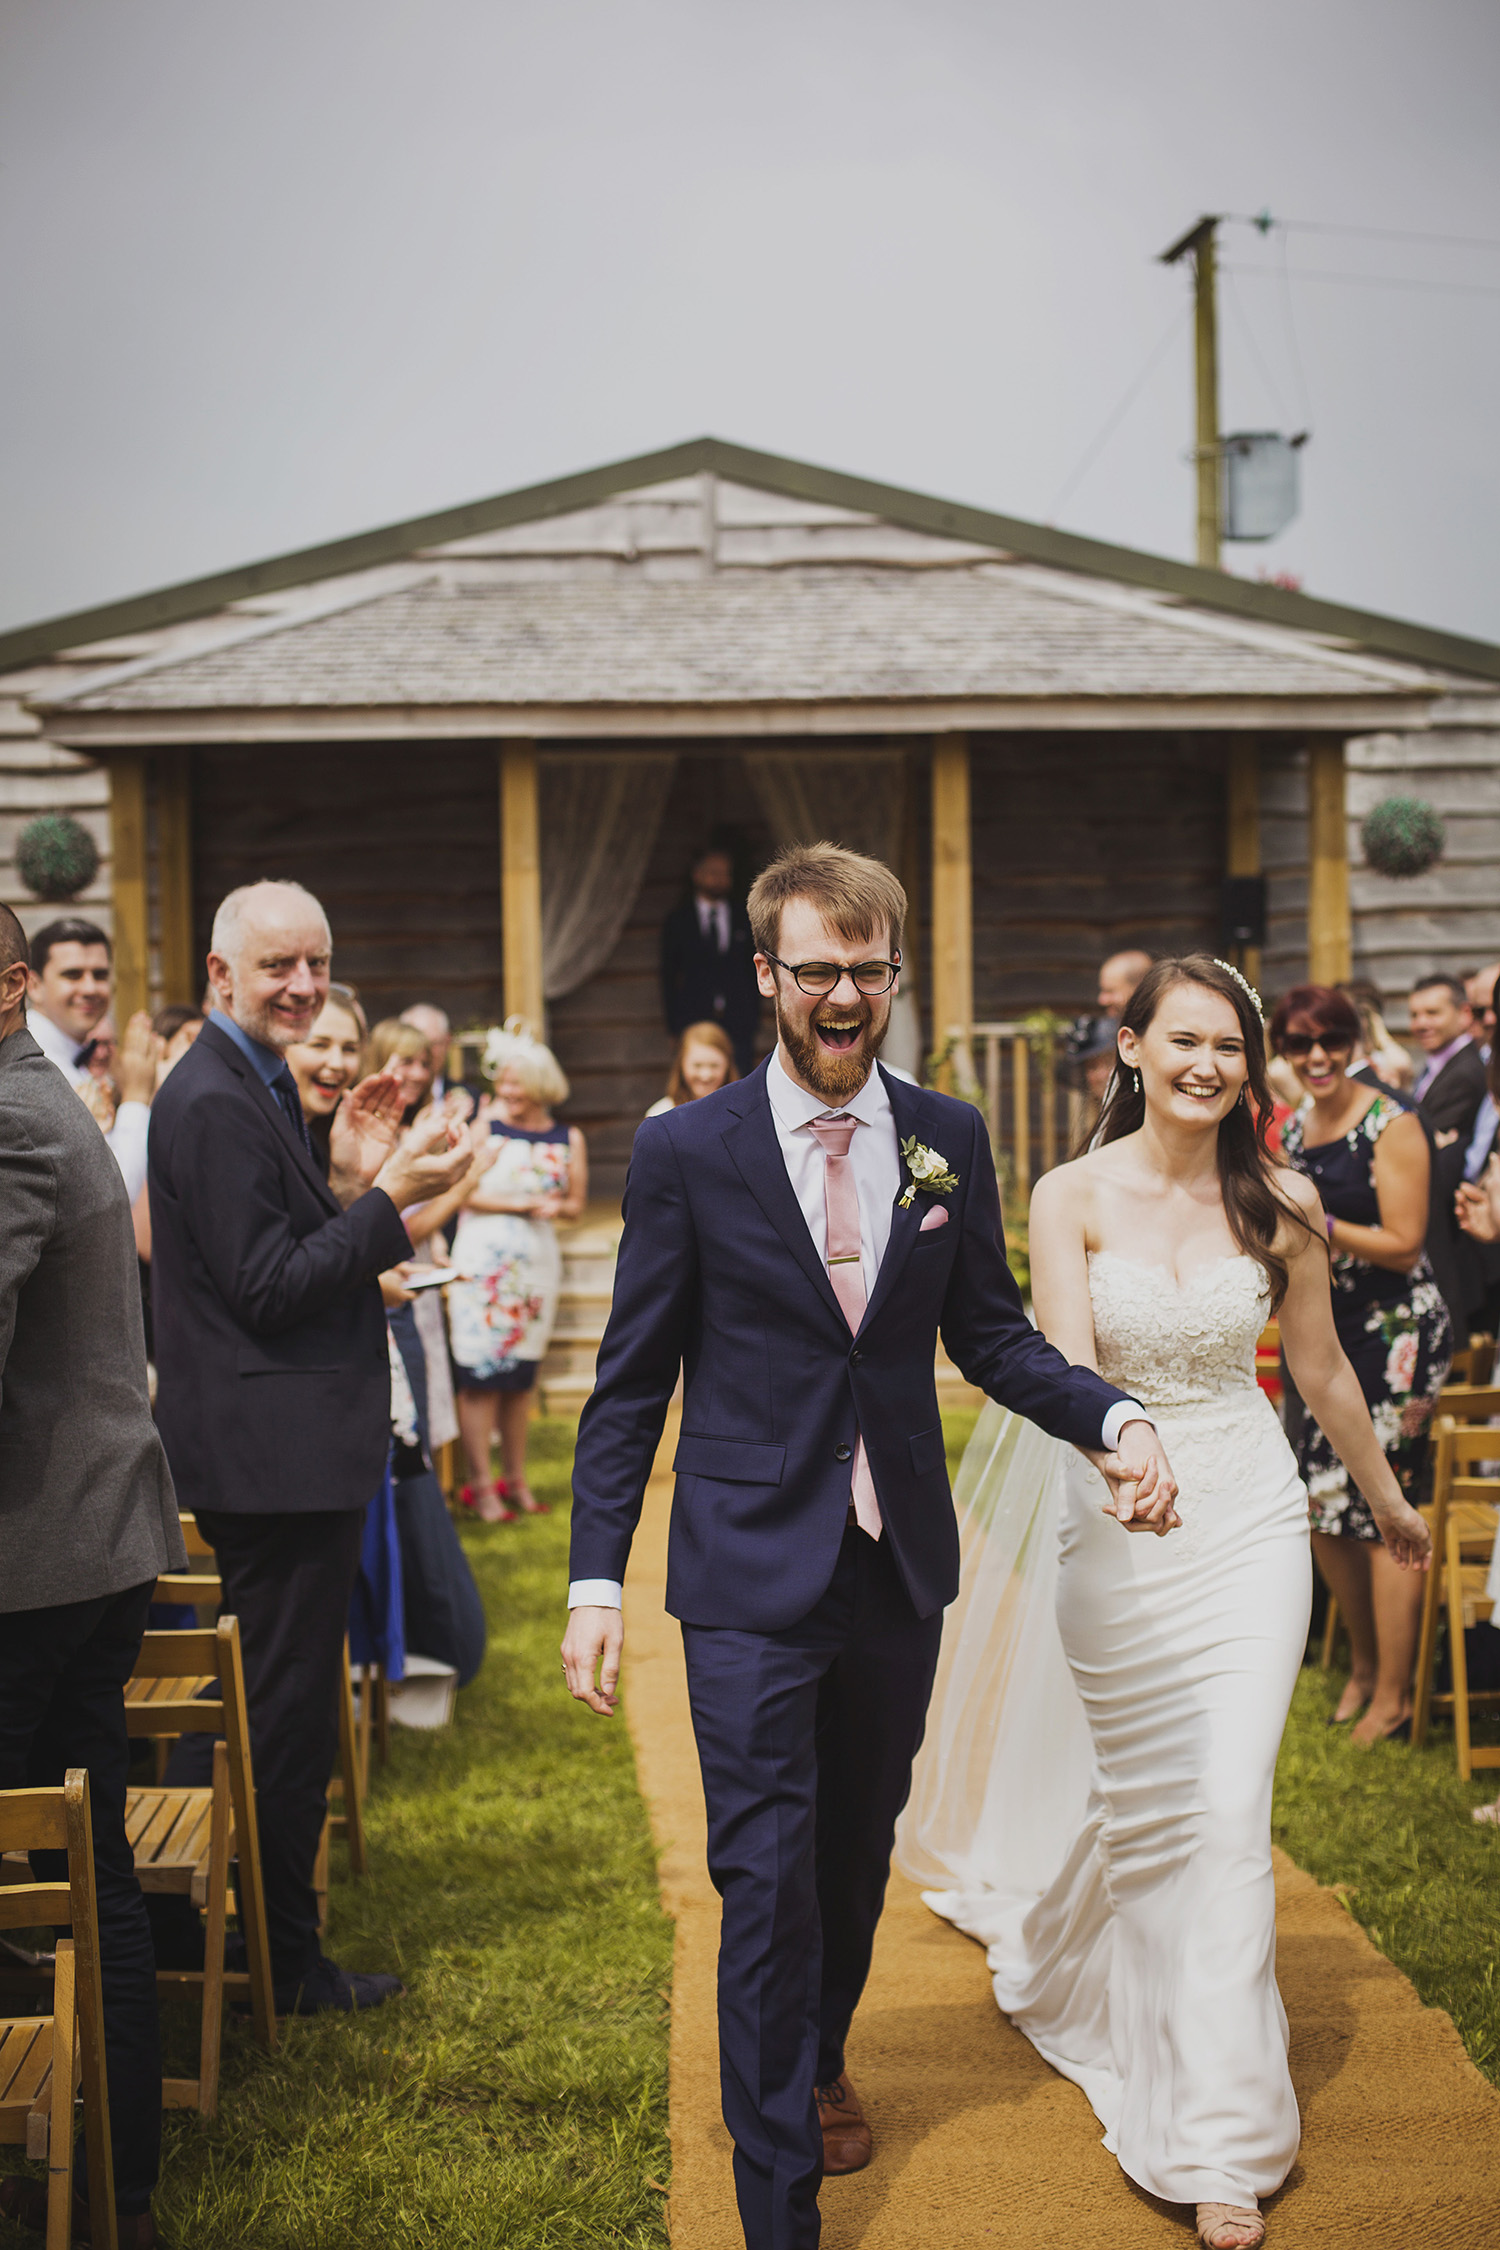 bride and groom walking down the isle at wedding ceremony at cott farm barn wedding venue somerset